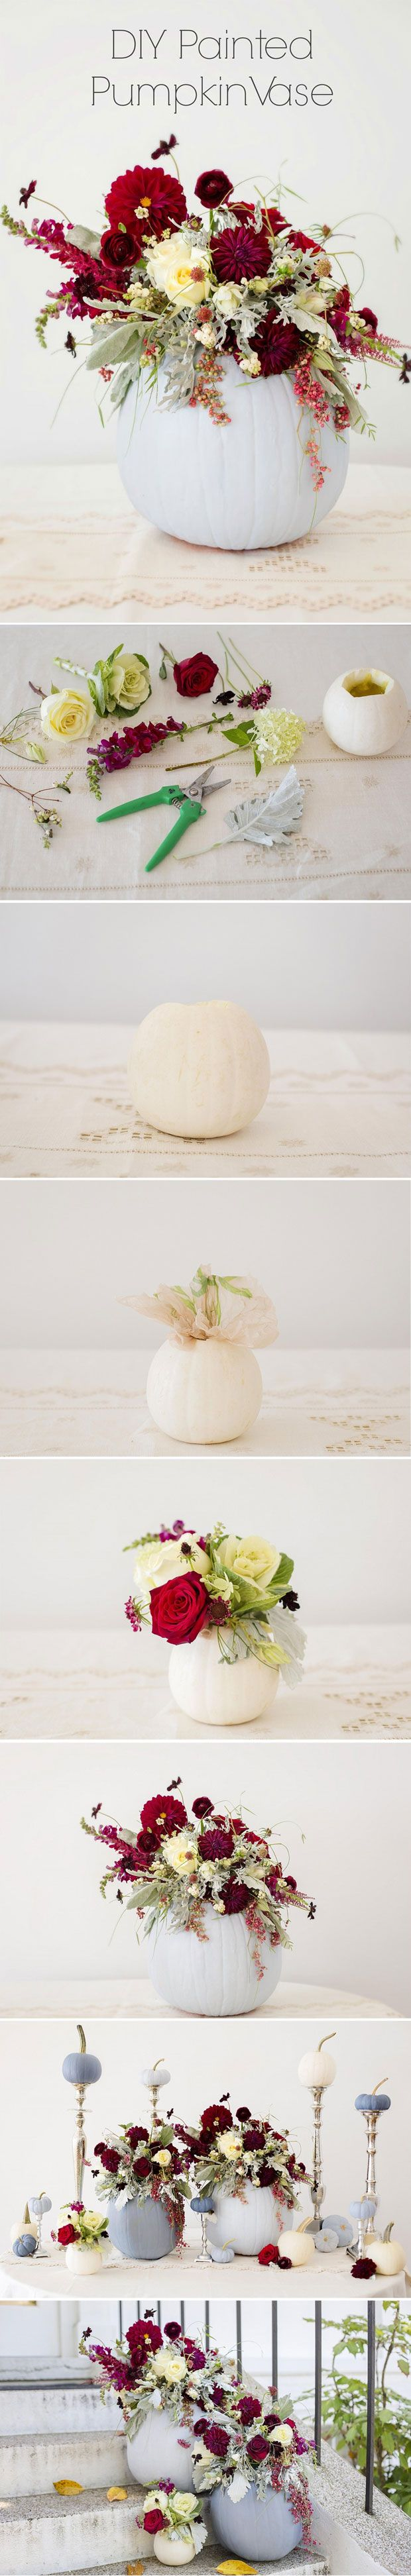 DIY painted pumpkin wedding vases ideas for Halloween weddings